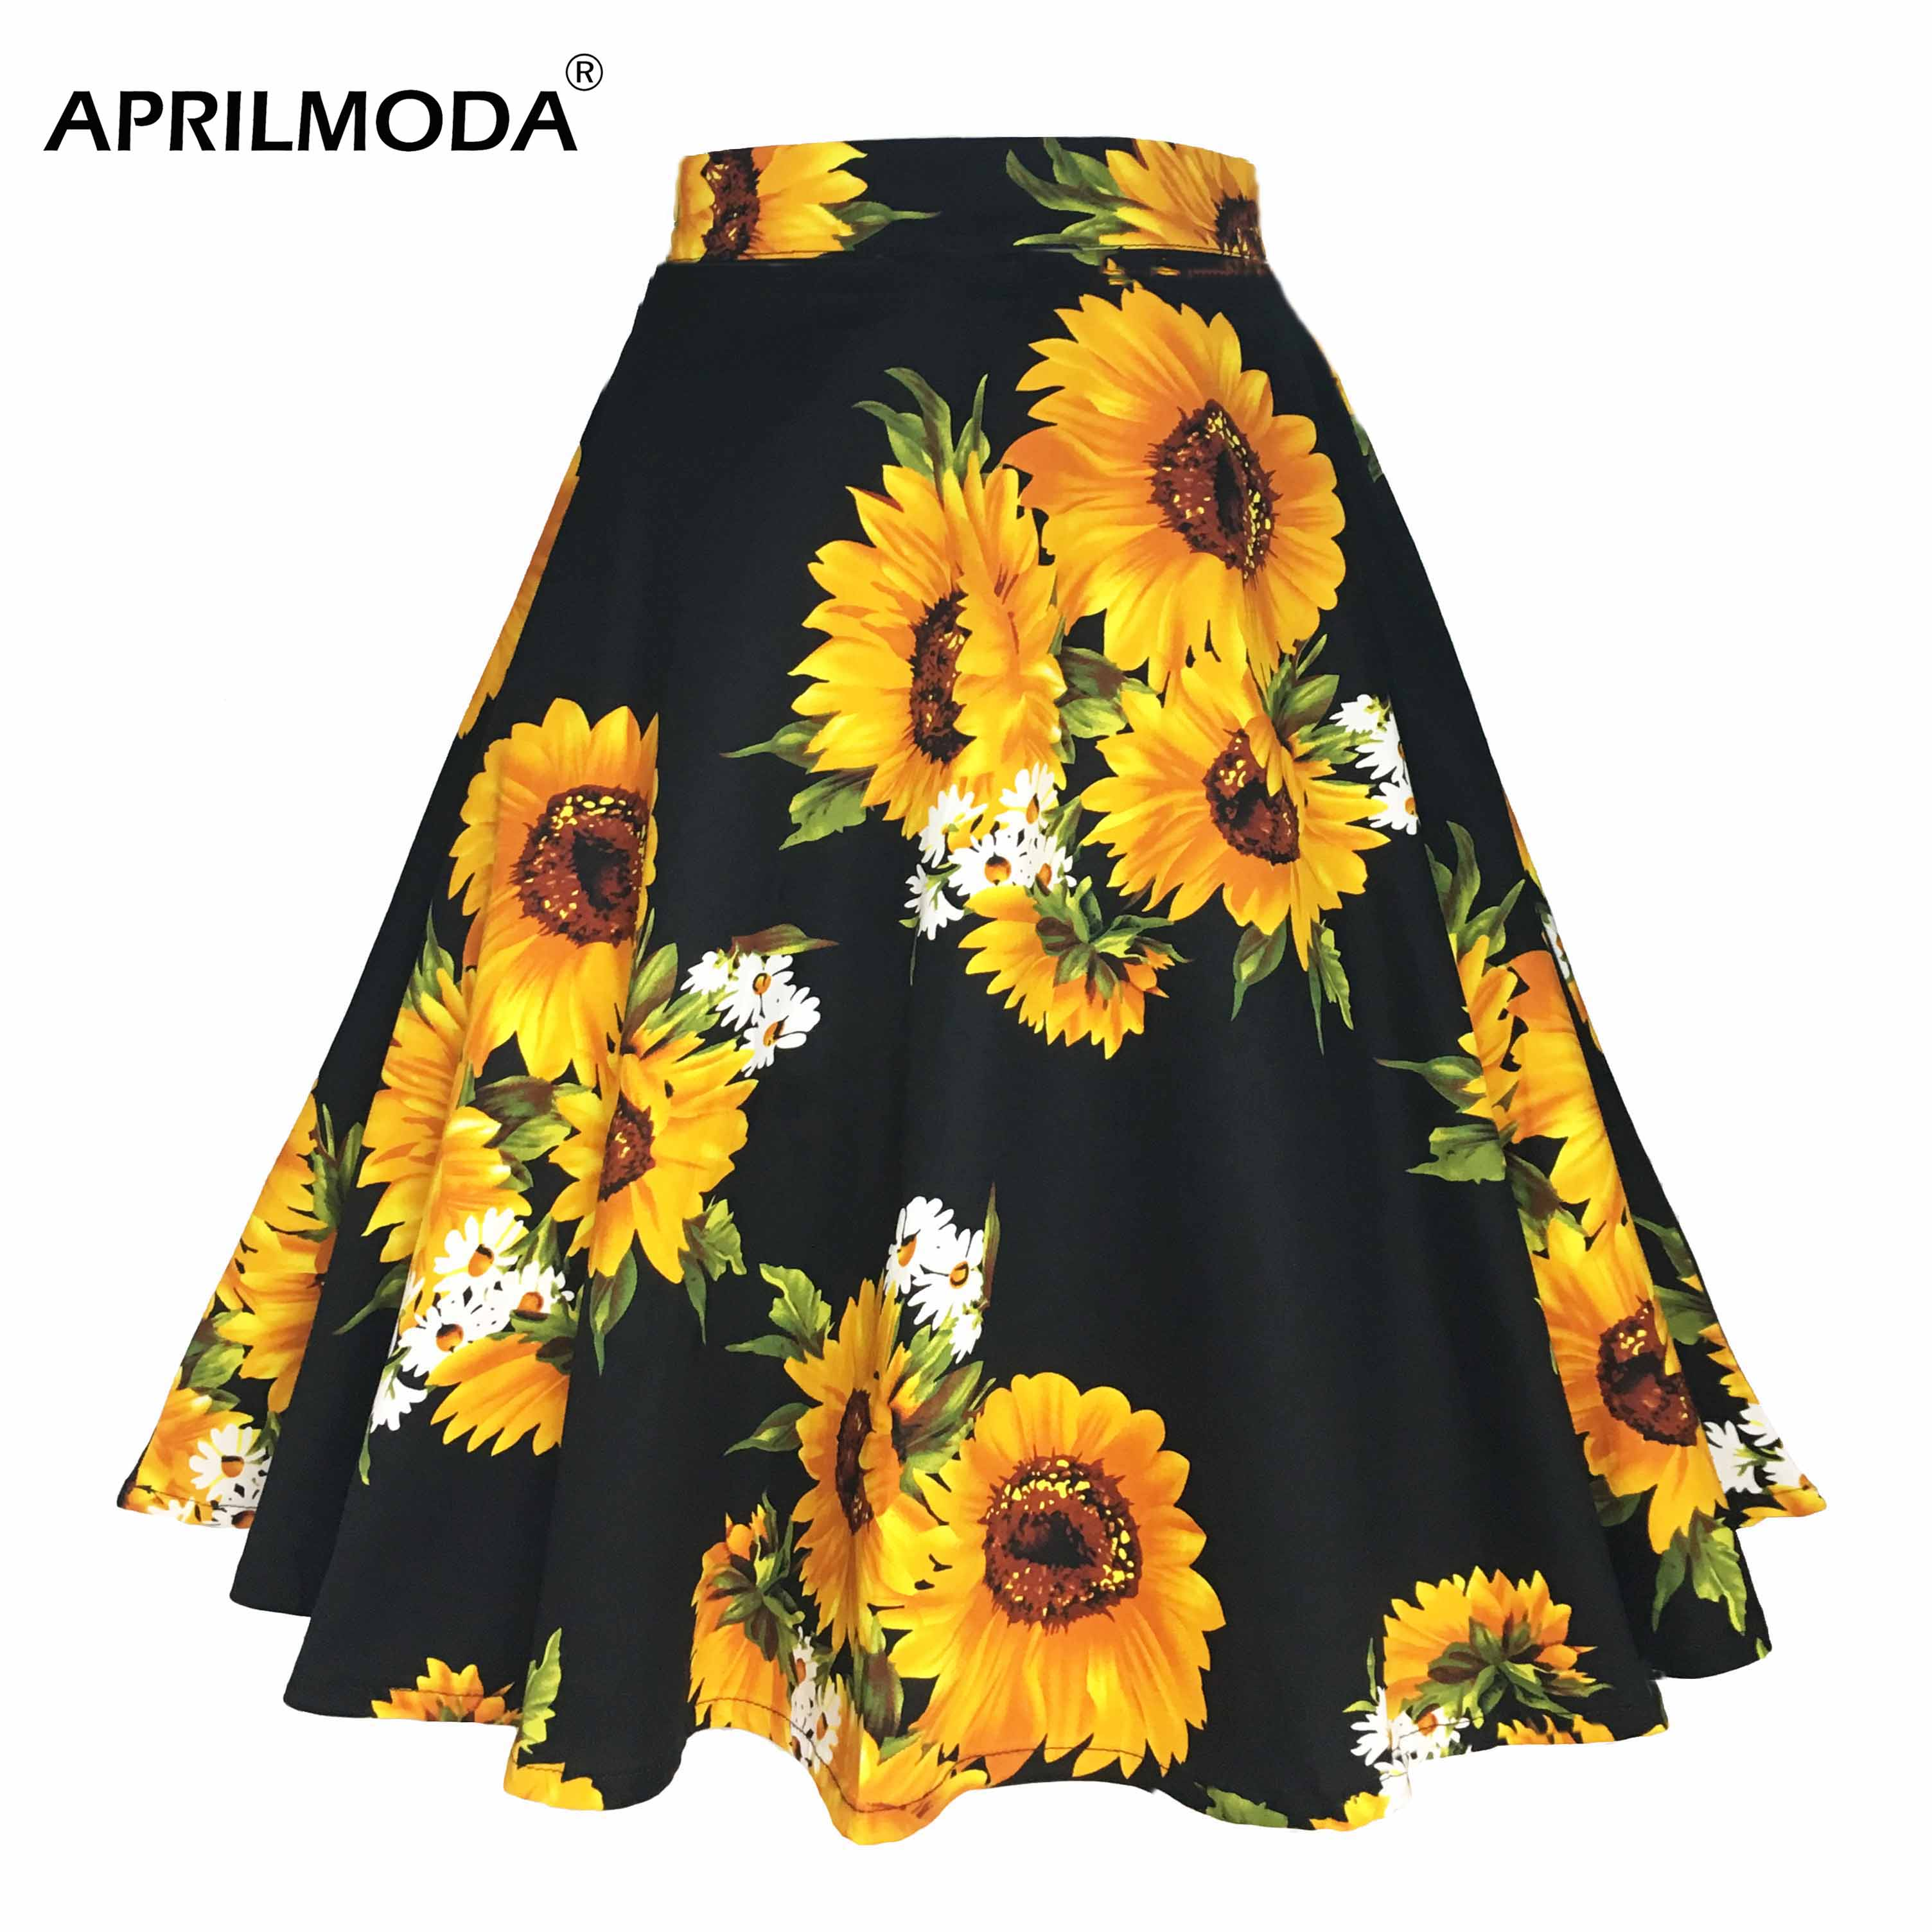 2019 Summer Vintage Casual Skirt Plus Size Floral Sunflower Printed Skater Skirts Swing Zipper Midi Women Pleated Retro Vestidos